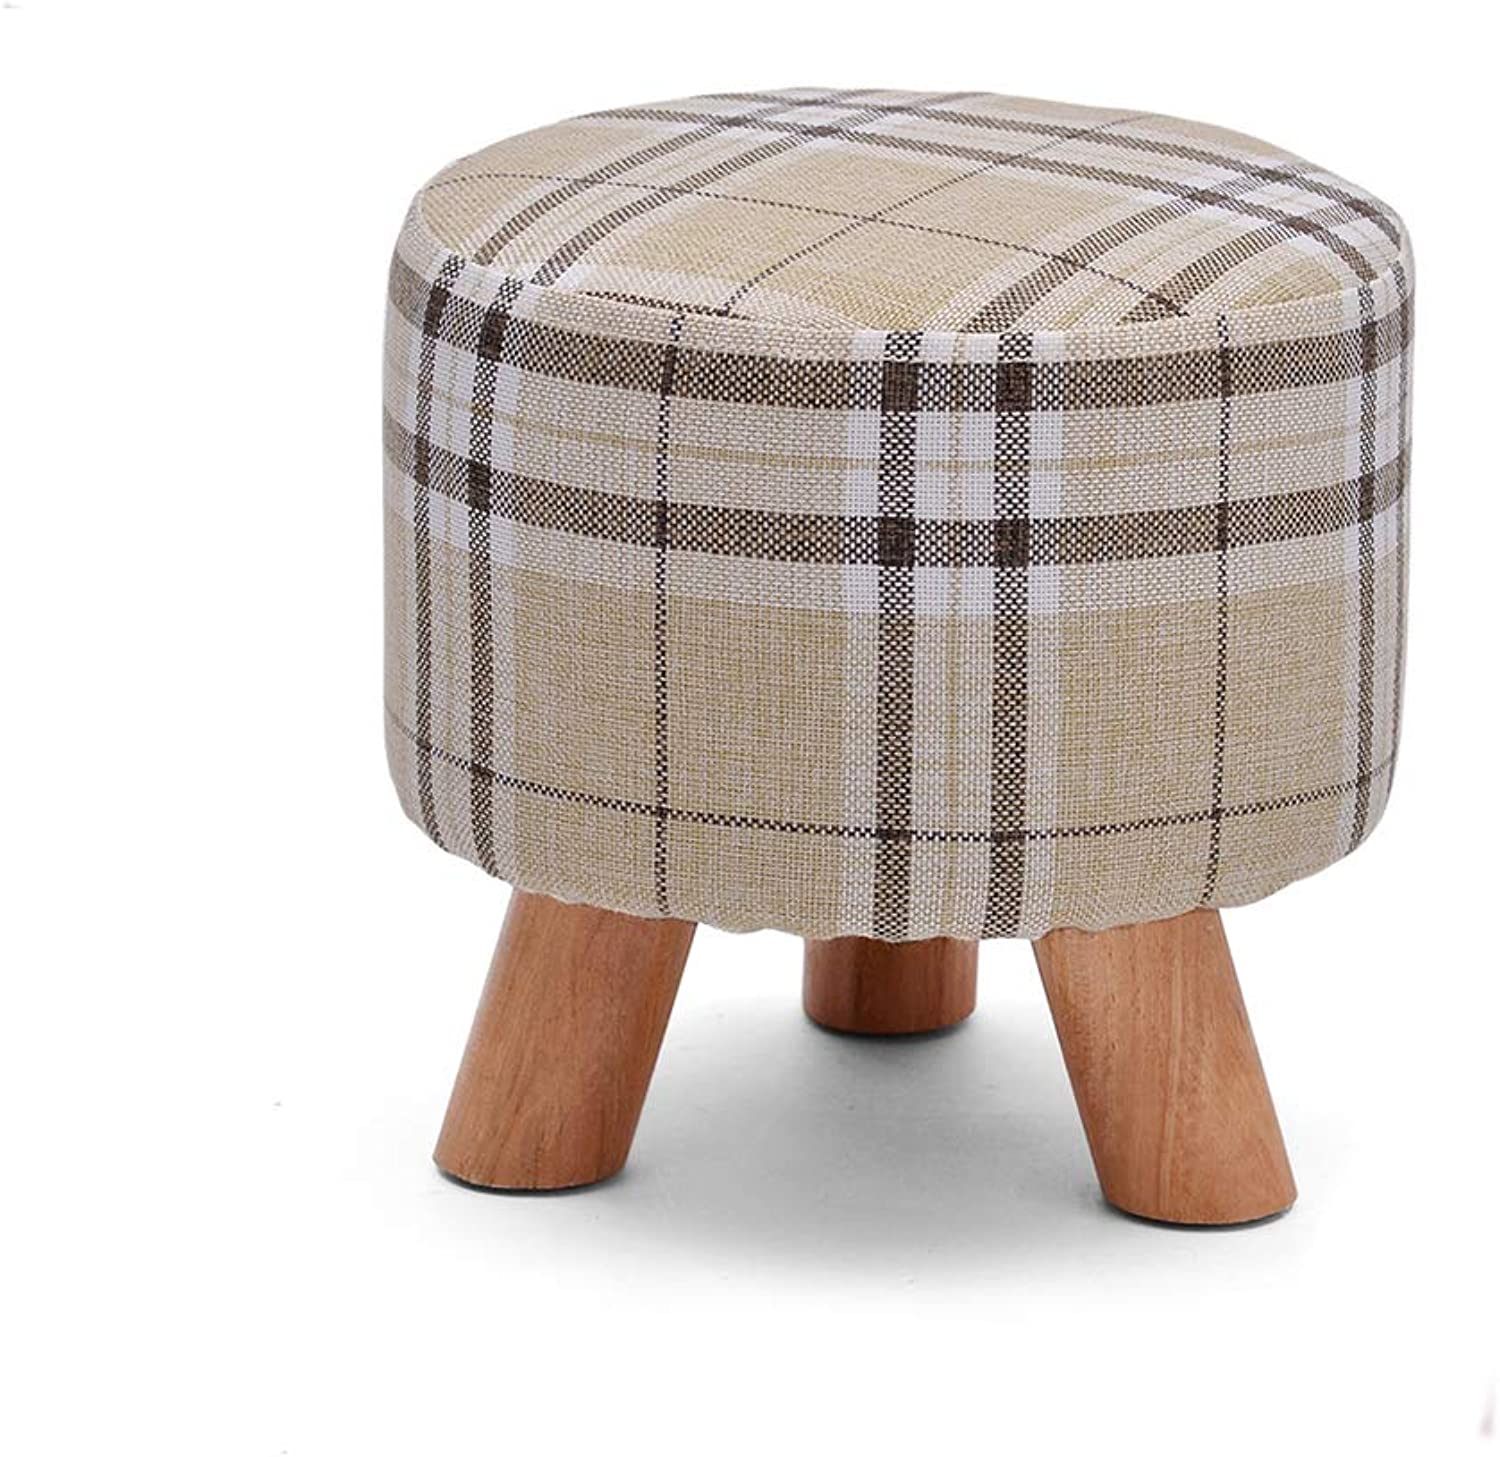 Wooden Footrest Stool, Small Portable Comfy Sponge Bench with Detachable Wooden Legs Modern Decoration for Home Travel-C 29x28cm(11x11inch)